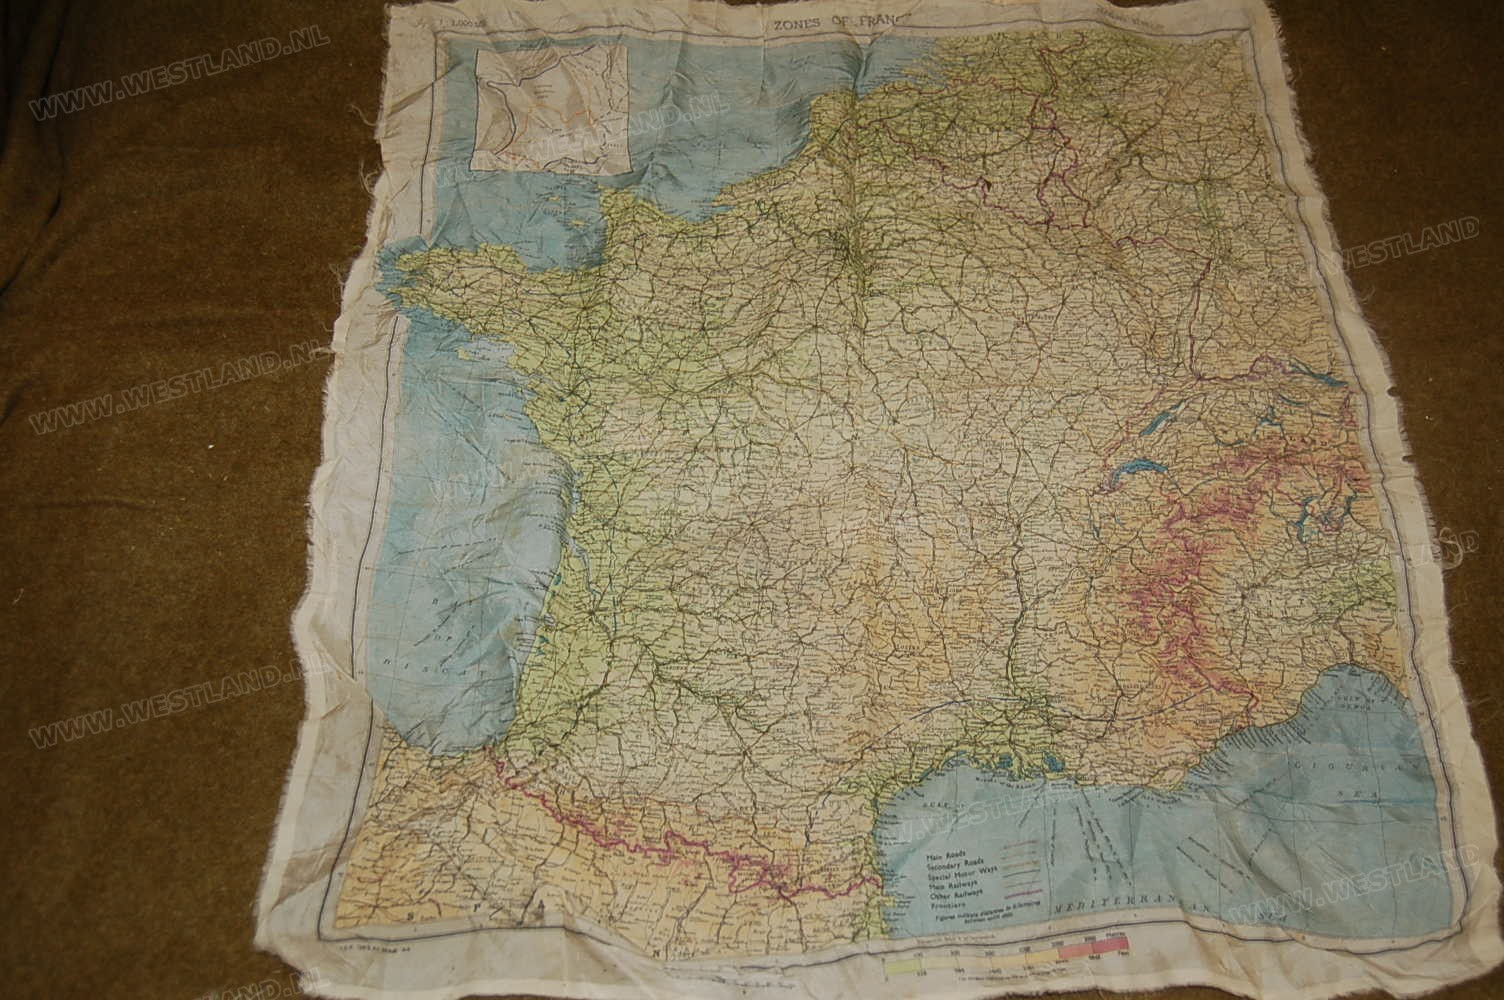 Map Of France Zones.Zones Of France Escape Map